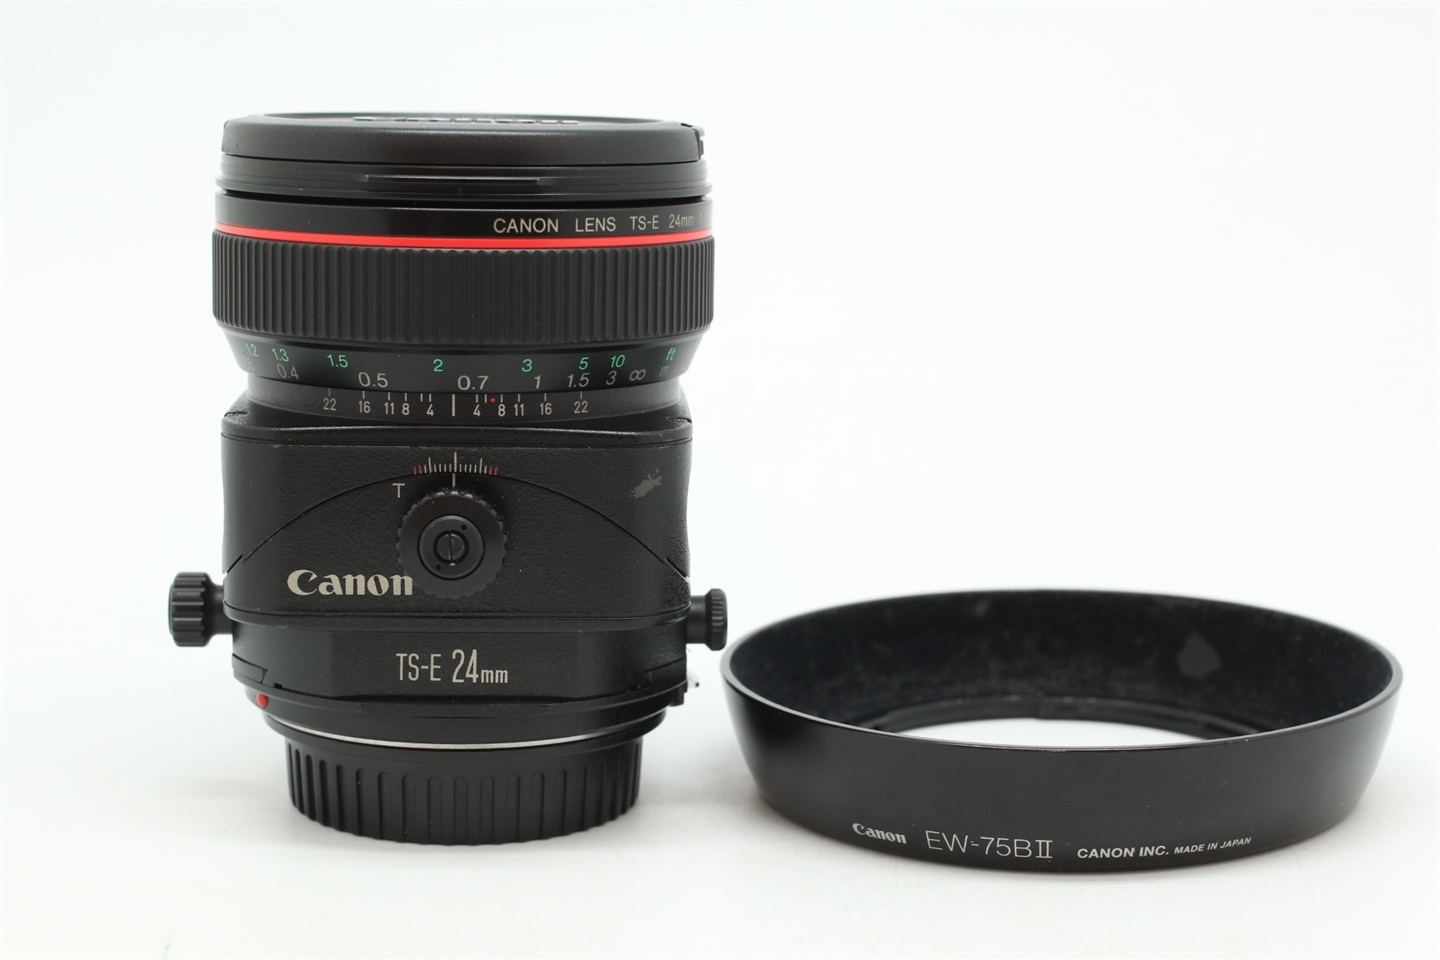 [USED-PUDU] CANON 24MM F3.5 L TS-E LENS 88%LIKE NEW CONDITION SN:35634